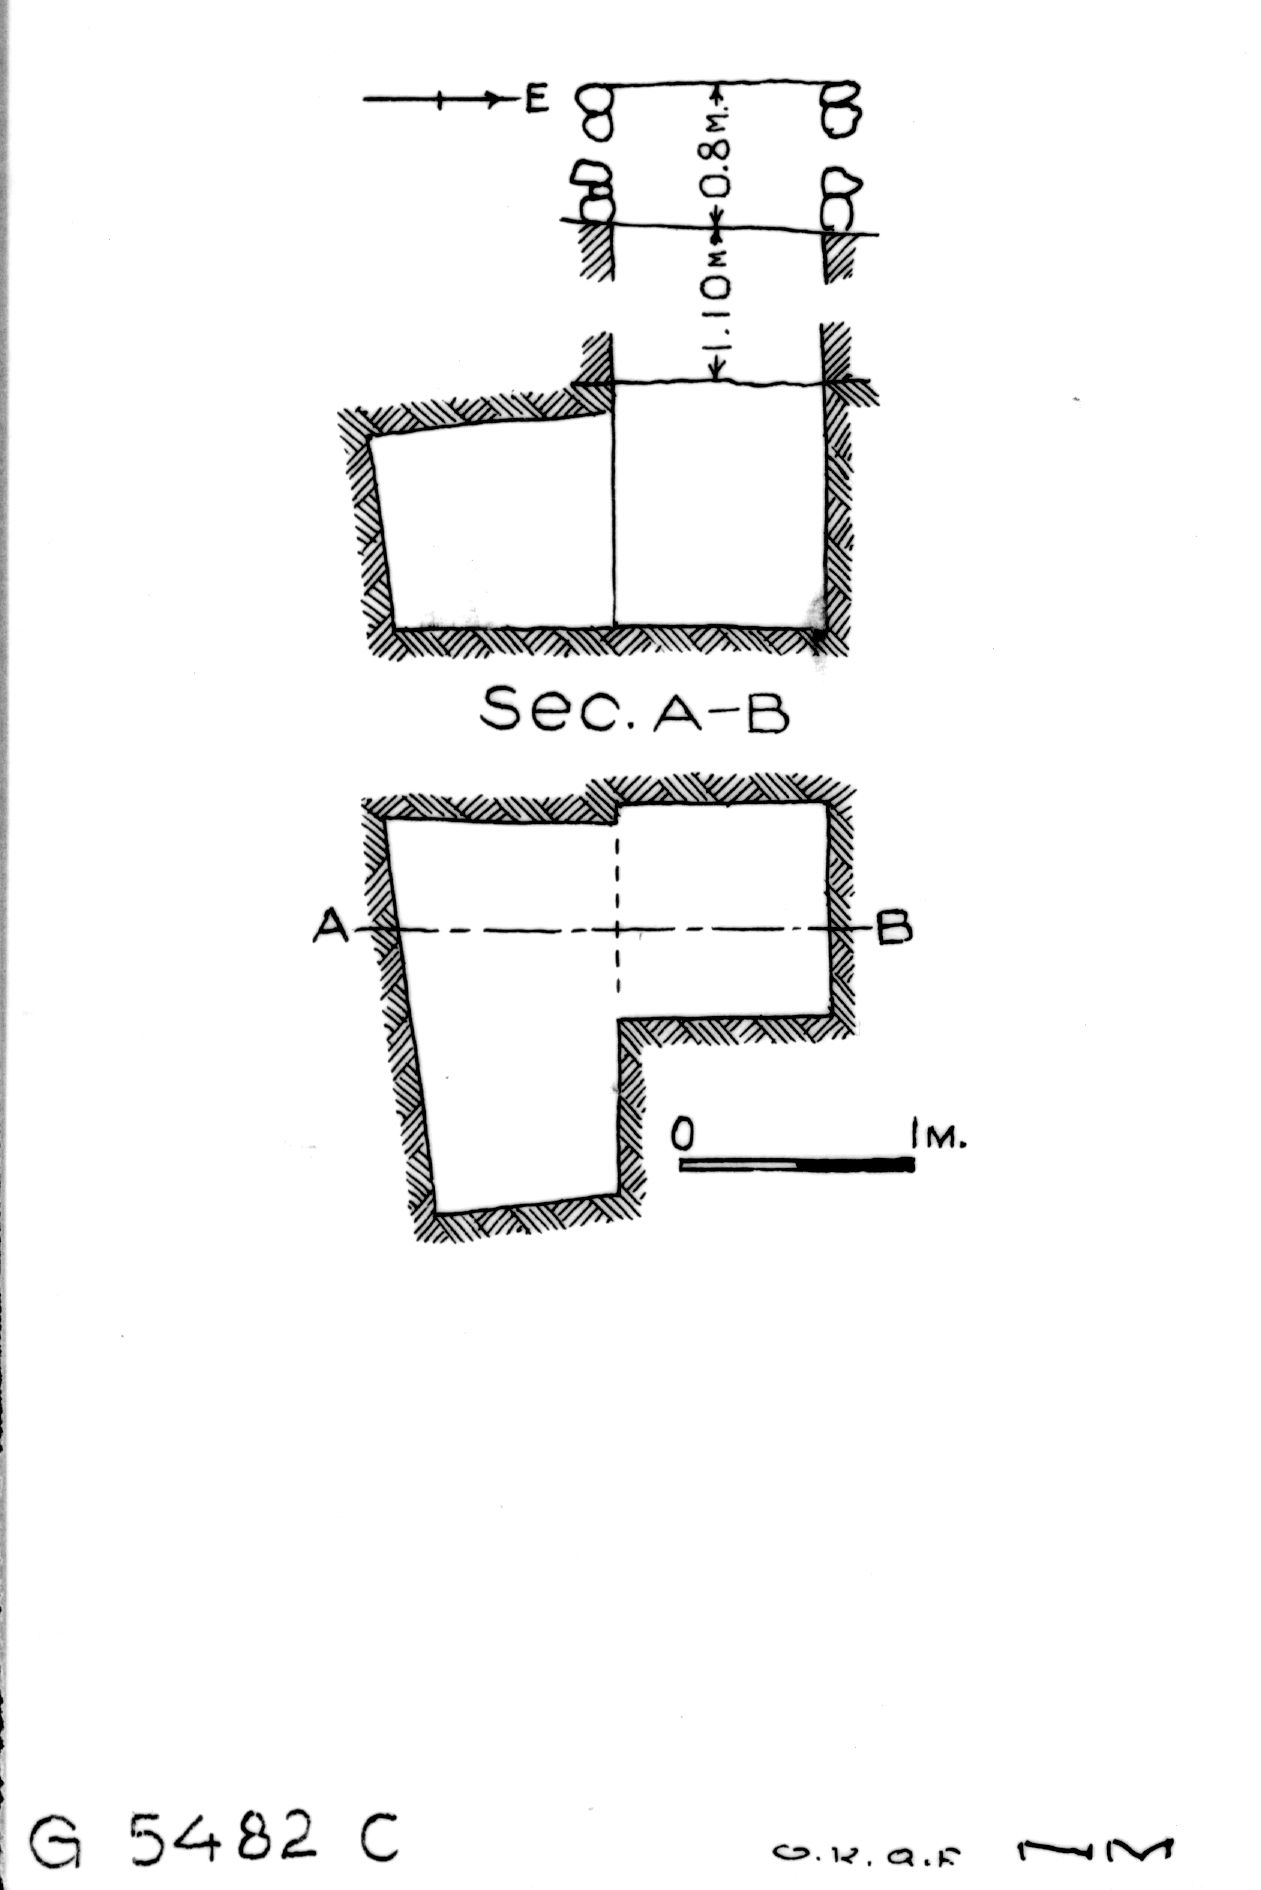 Maps and plans: G 5482, Shaft C